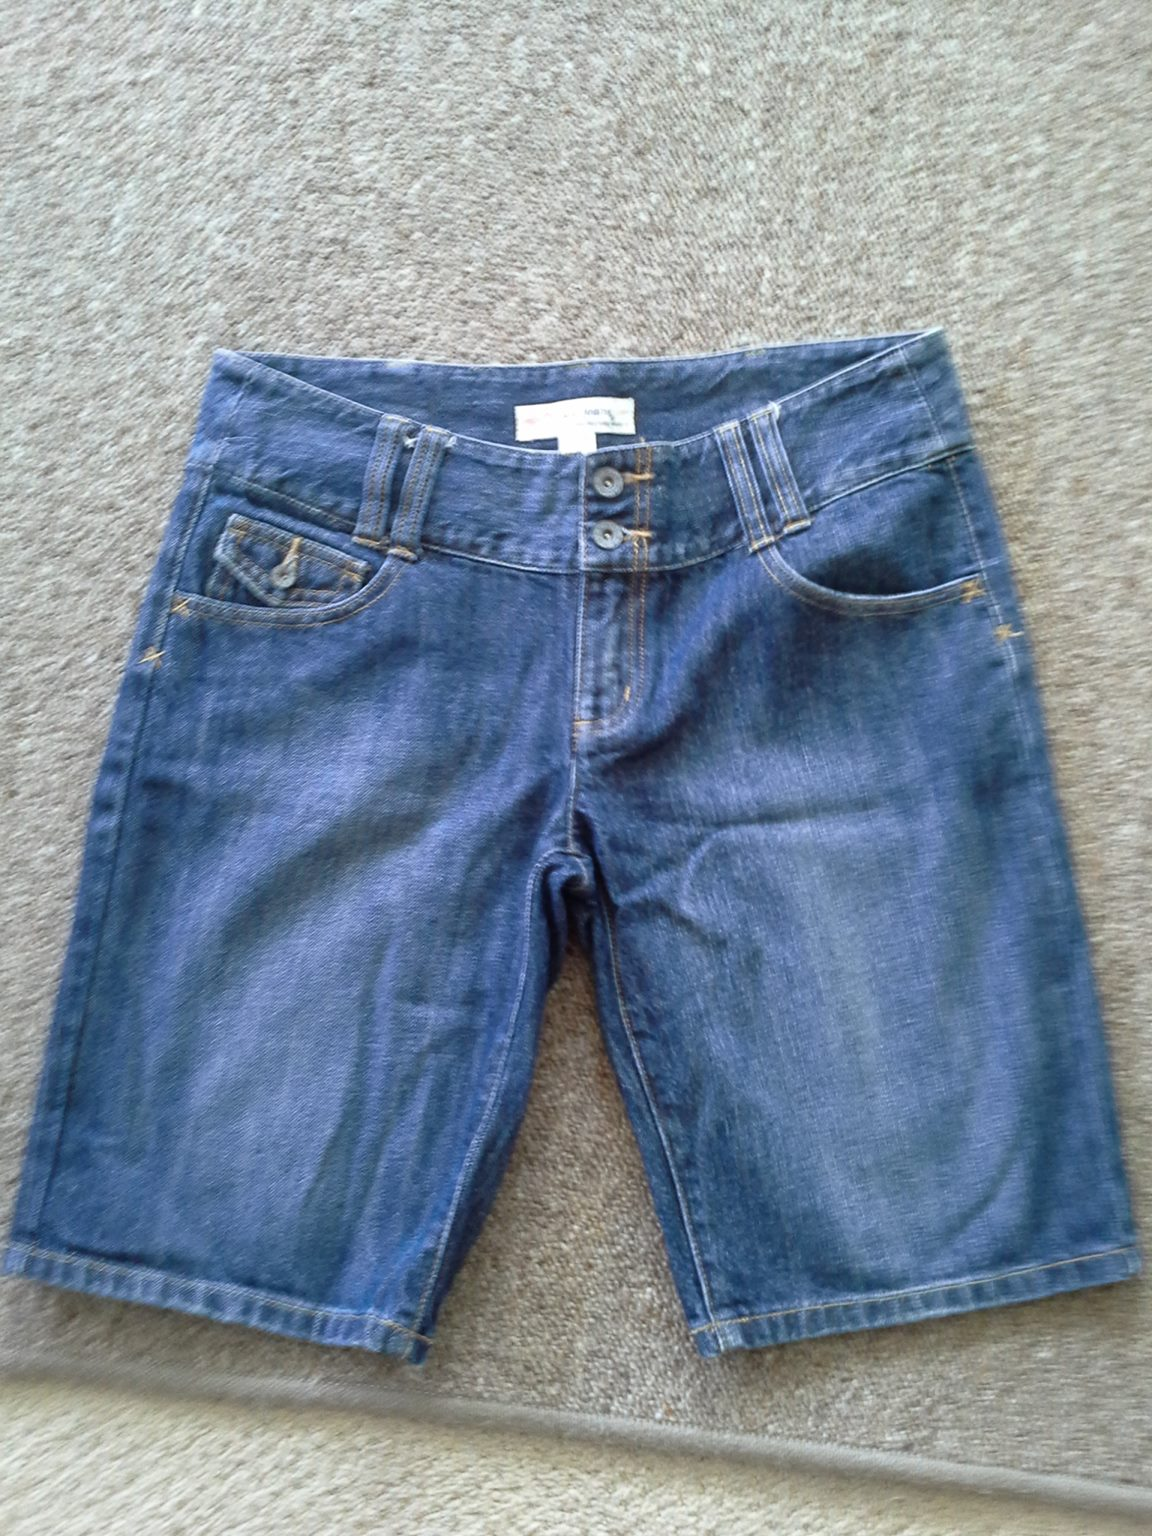 6778b976d9 Just Jeans' Denim Shorts Size 12 AS NEW | Trade Me